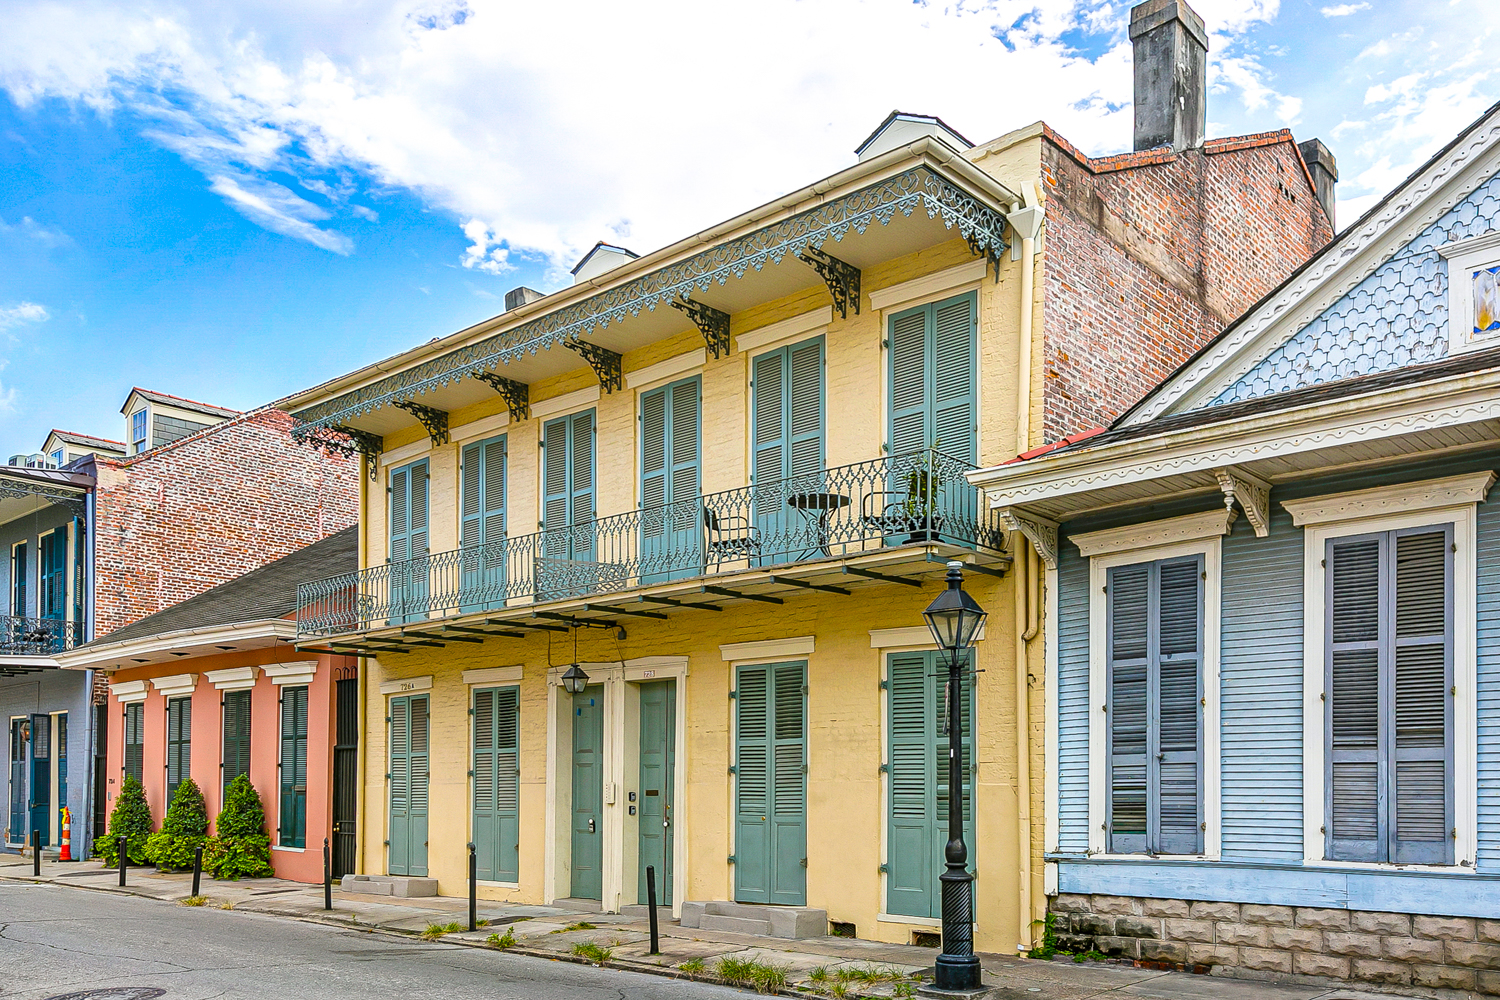 French Quarter, Condo, 1 beds, 2.0 baths, $2400 per month New Orleans Rental - devie image_1